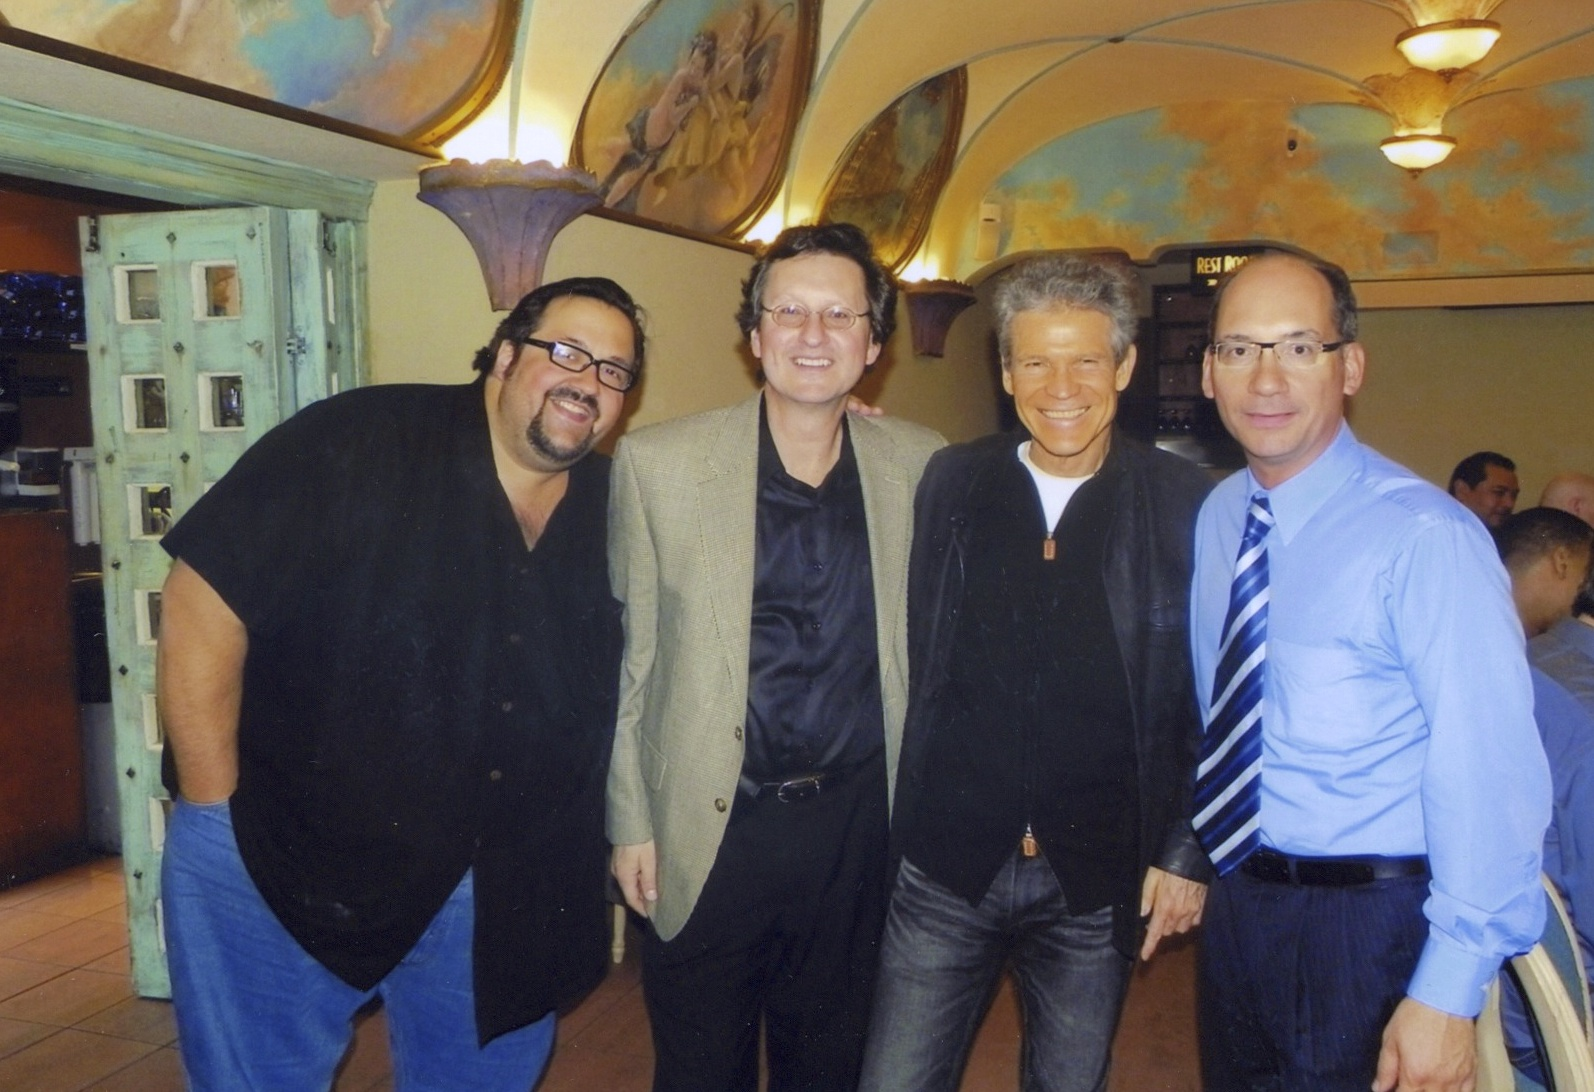 Joey DeFrancesco & David Sanborn (2011 New York)